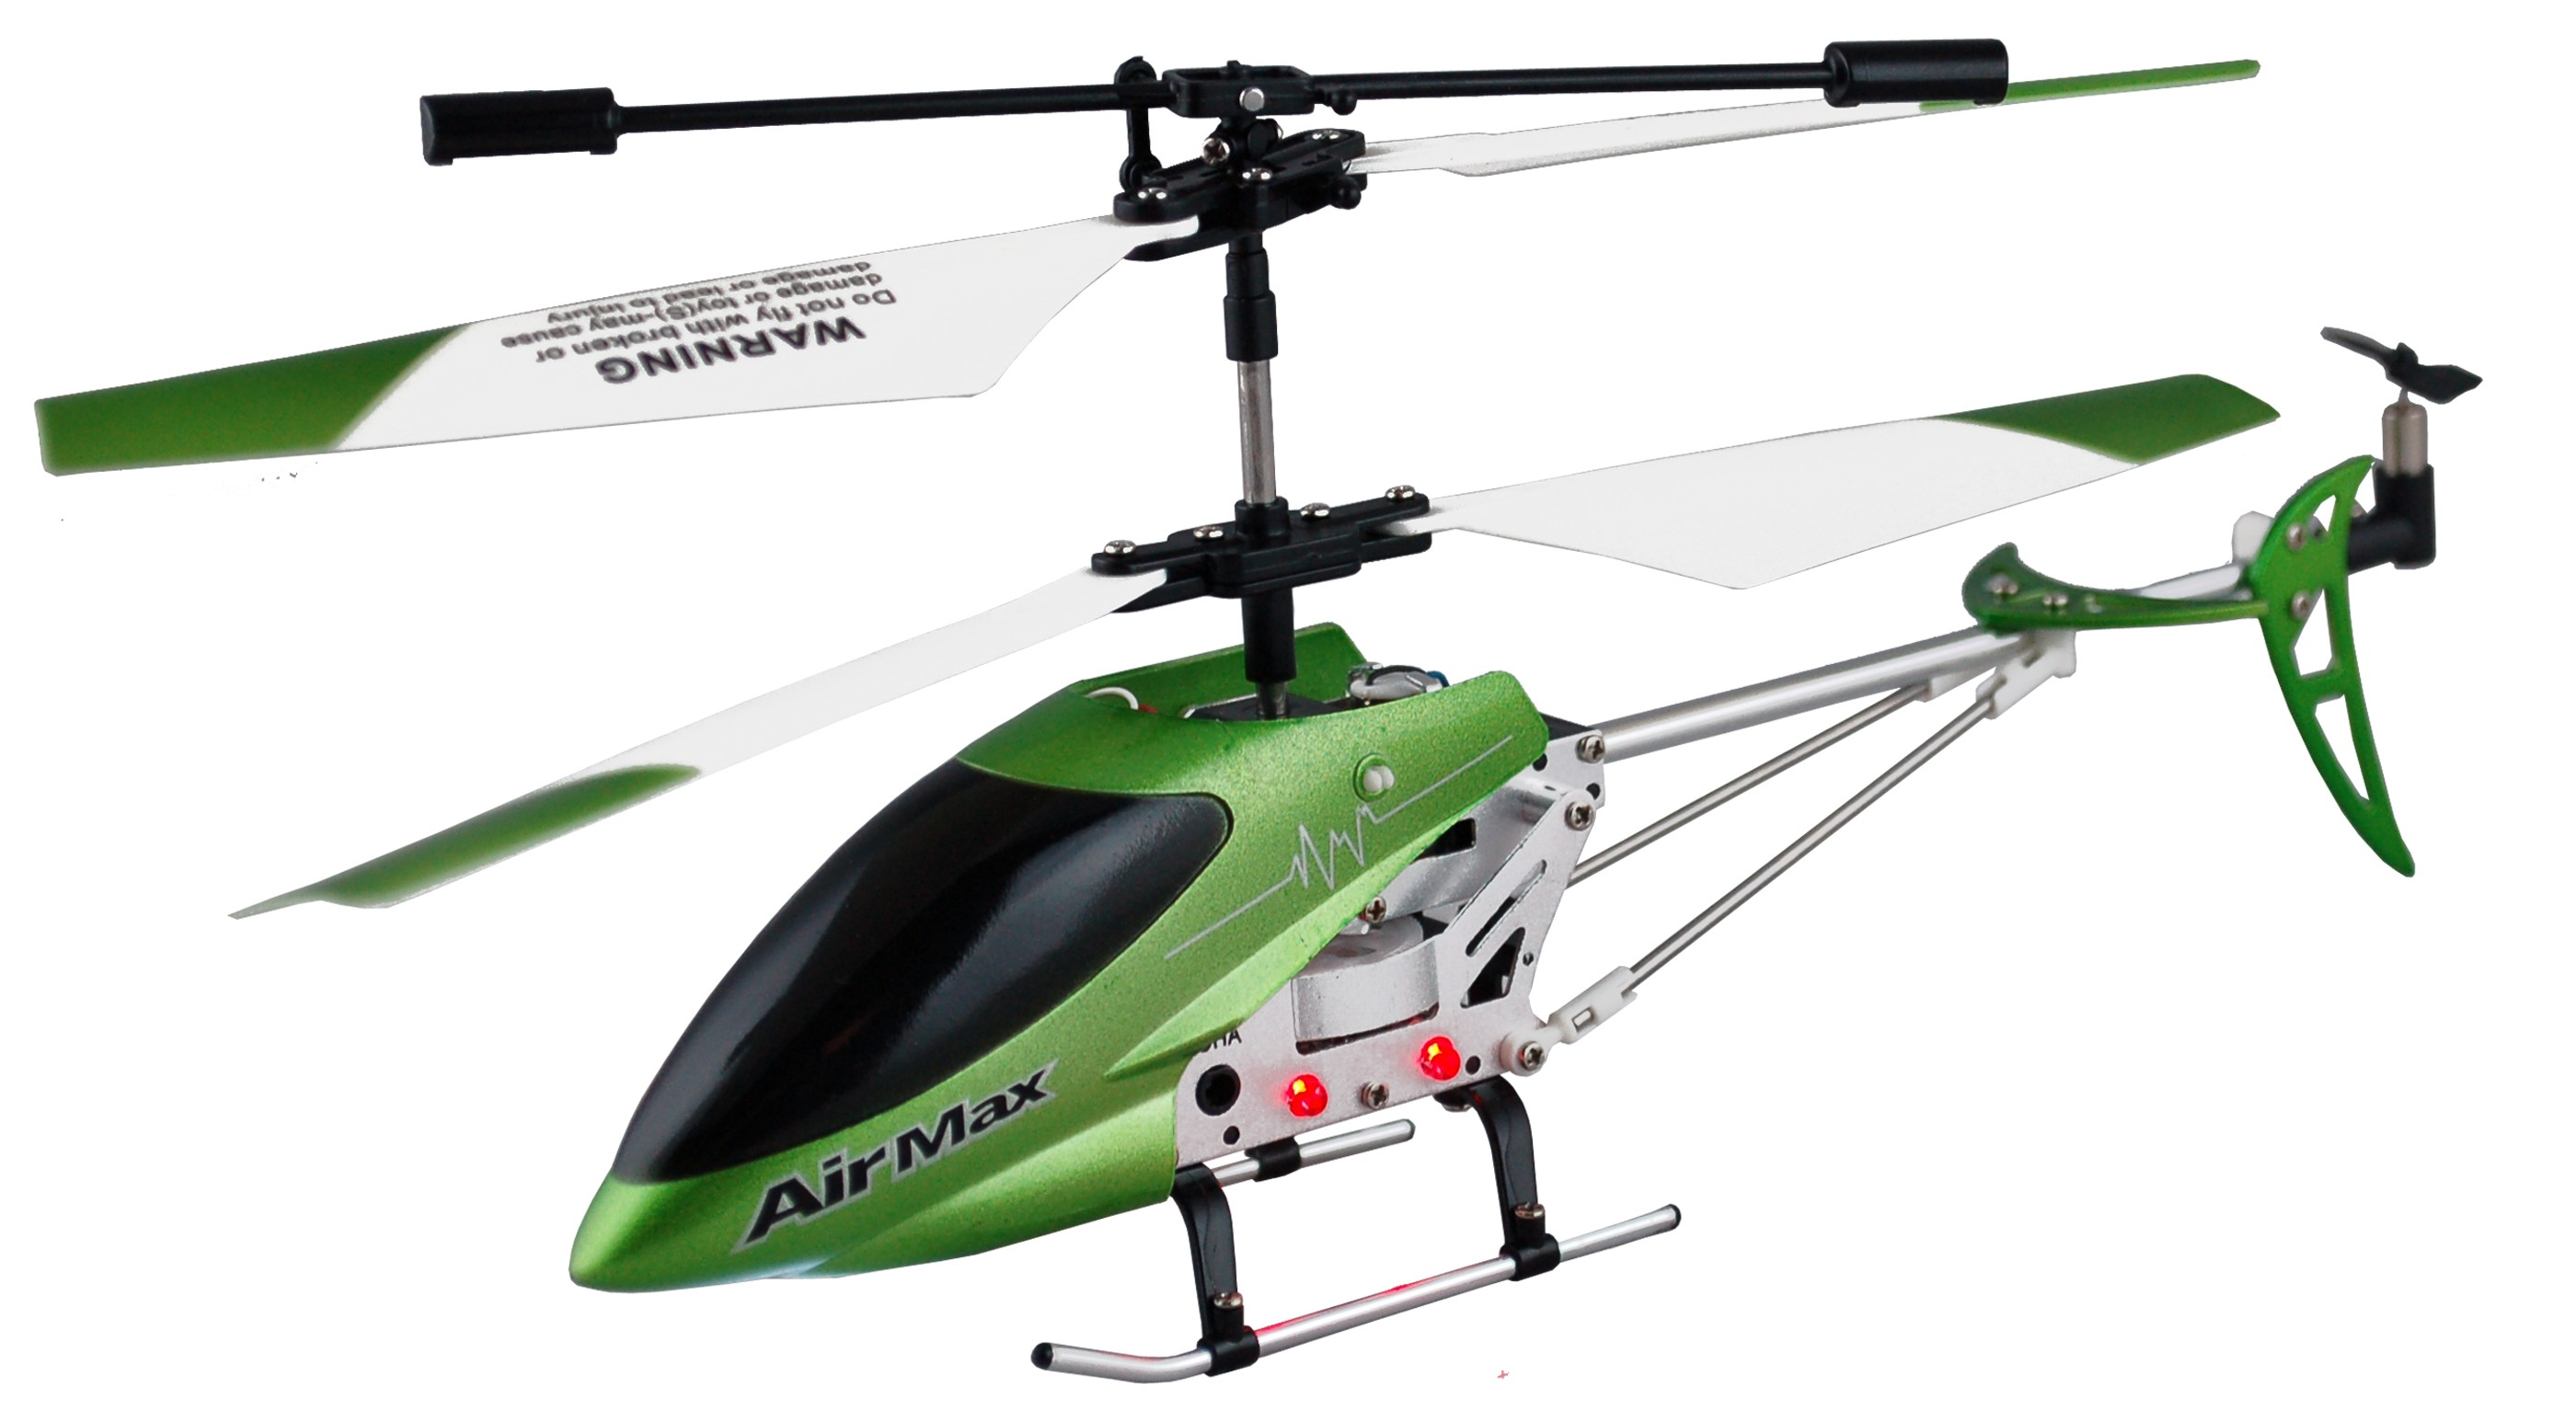 rc toys shop with Playing With A Mini Remote Control Helicopter on Conservation as well Fast Lane Radio Control Mini Cooper furthermore dickietoys likewise Dji Phantom Aerial Uav Drone Quadcopter For Gopro in addition Playmobil Lion Knights Empire Castle 4865.